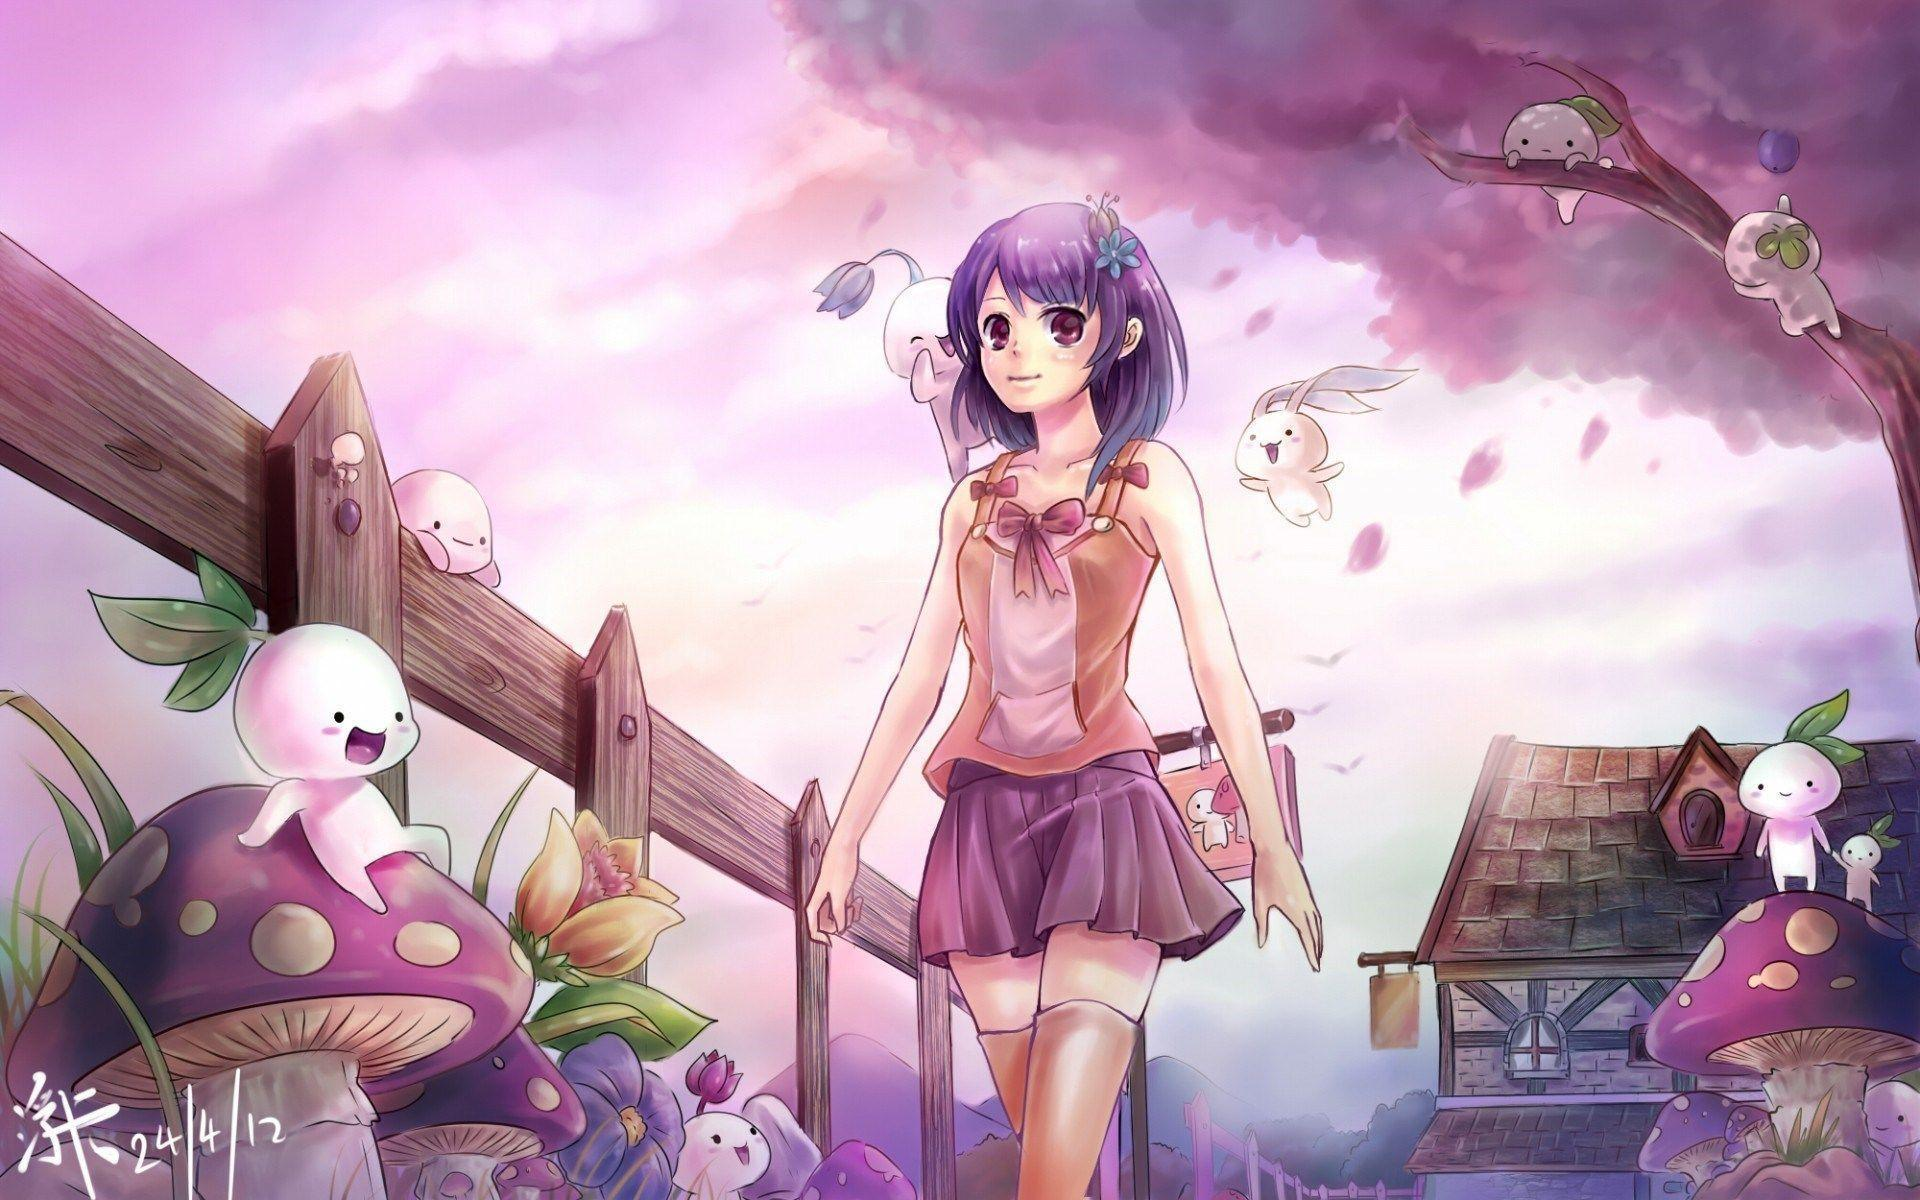 Cute Anime Hd Wallpapers